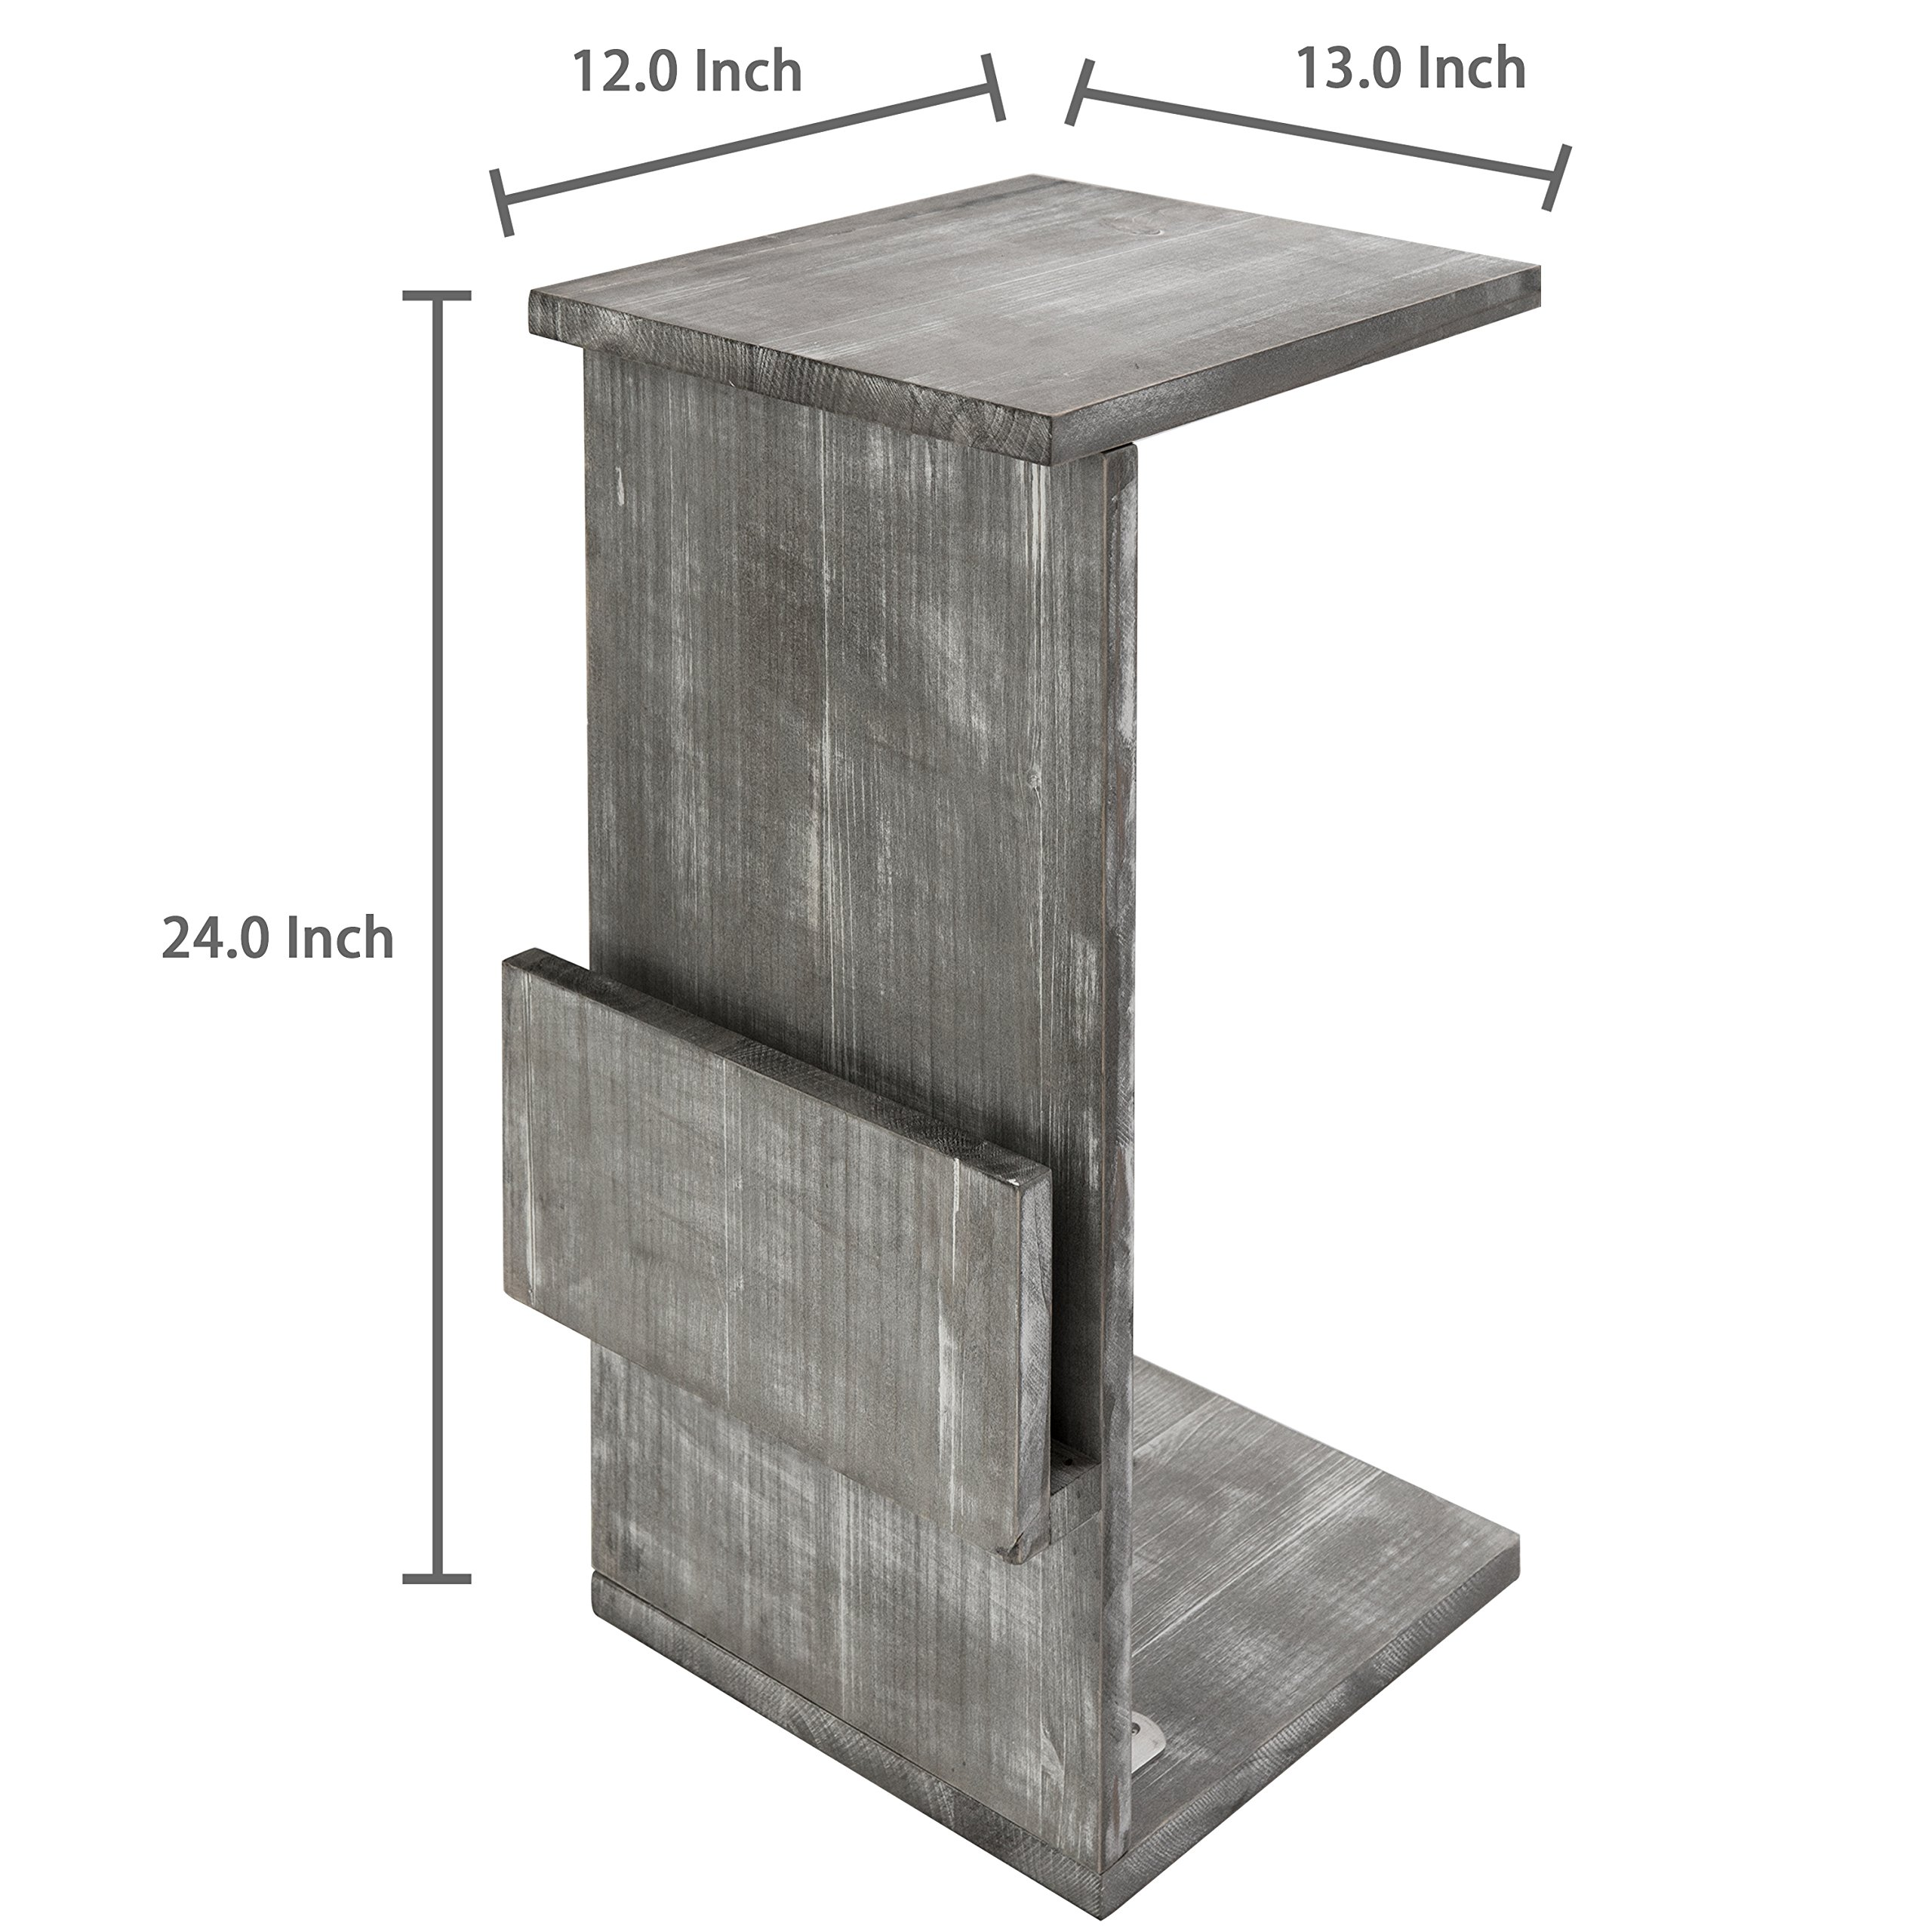 Gray Whitewashed Wood Sofa Side Table with Magazine Holder Rack, Under-the-Couch Sliding Tray by MyGift (Image #6)